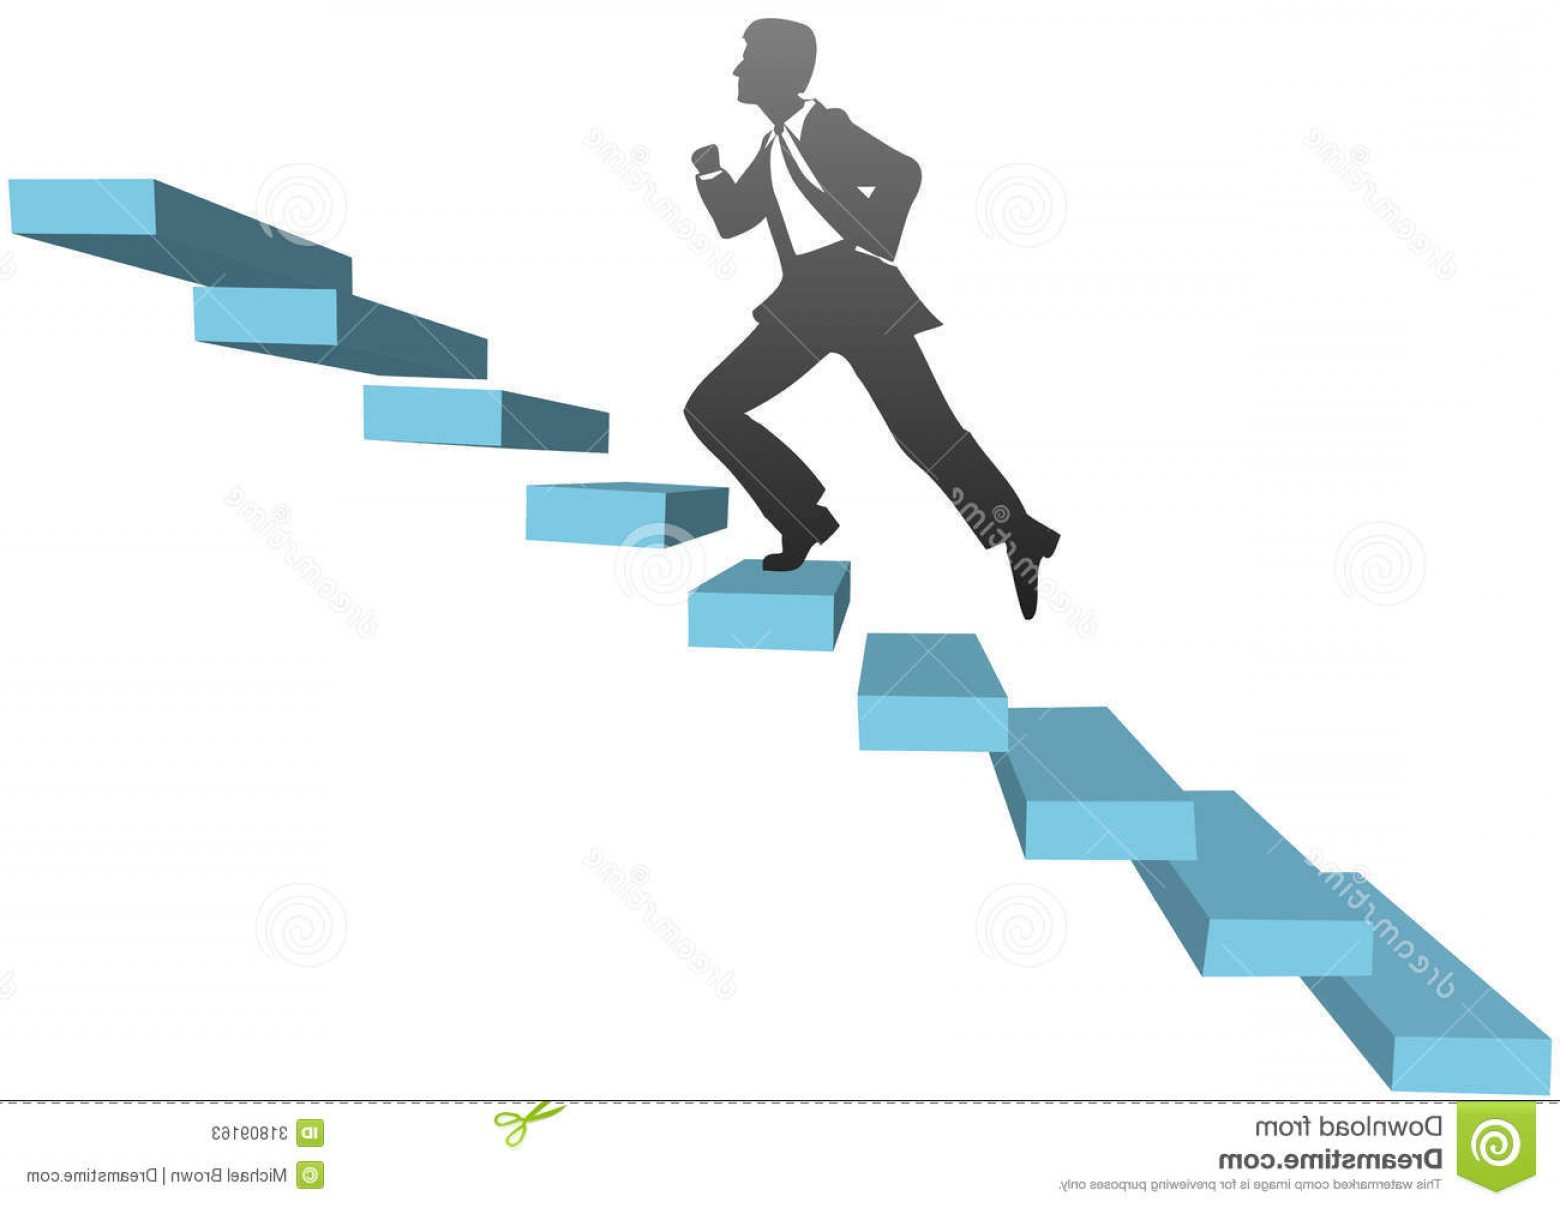 Stair Climb Vector: Stock Photos Business Man Running Climb Stairs Stylized Businessman Runs Up Challenge To Find Success Image